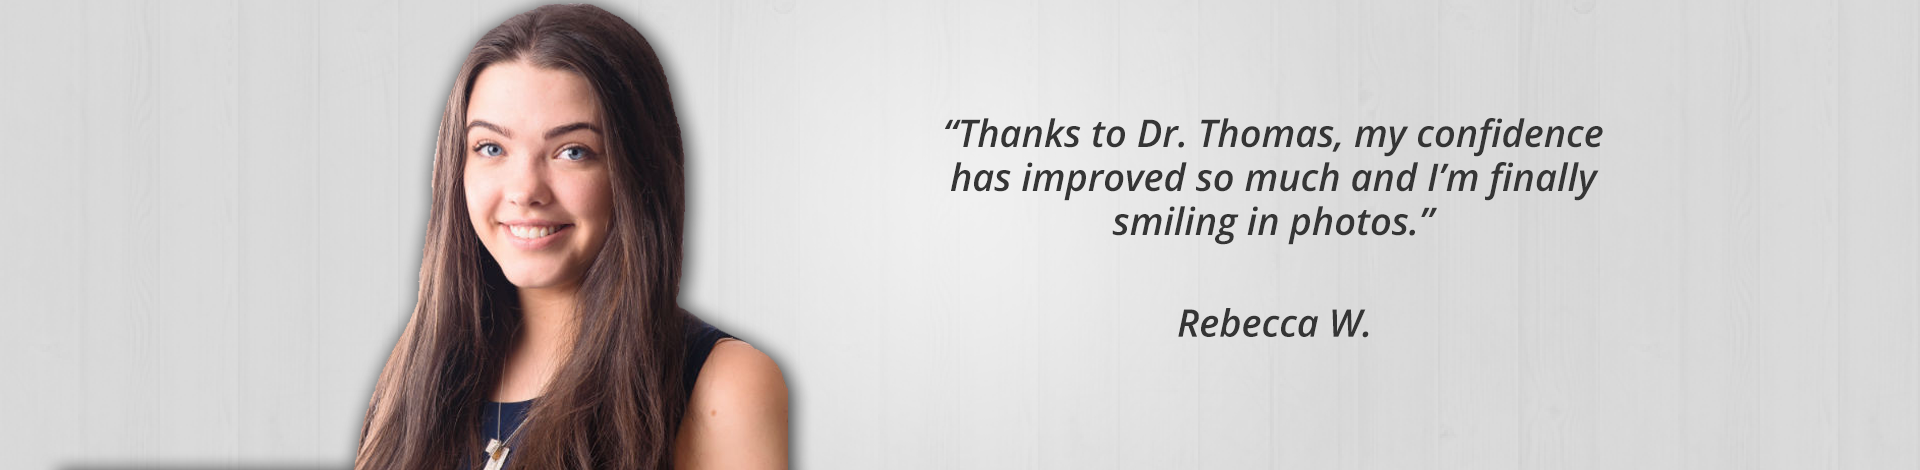 Rebecca Likers Her Cosmetic Dentistry Work